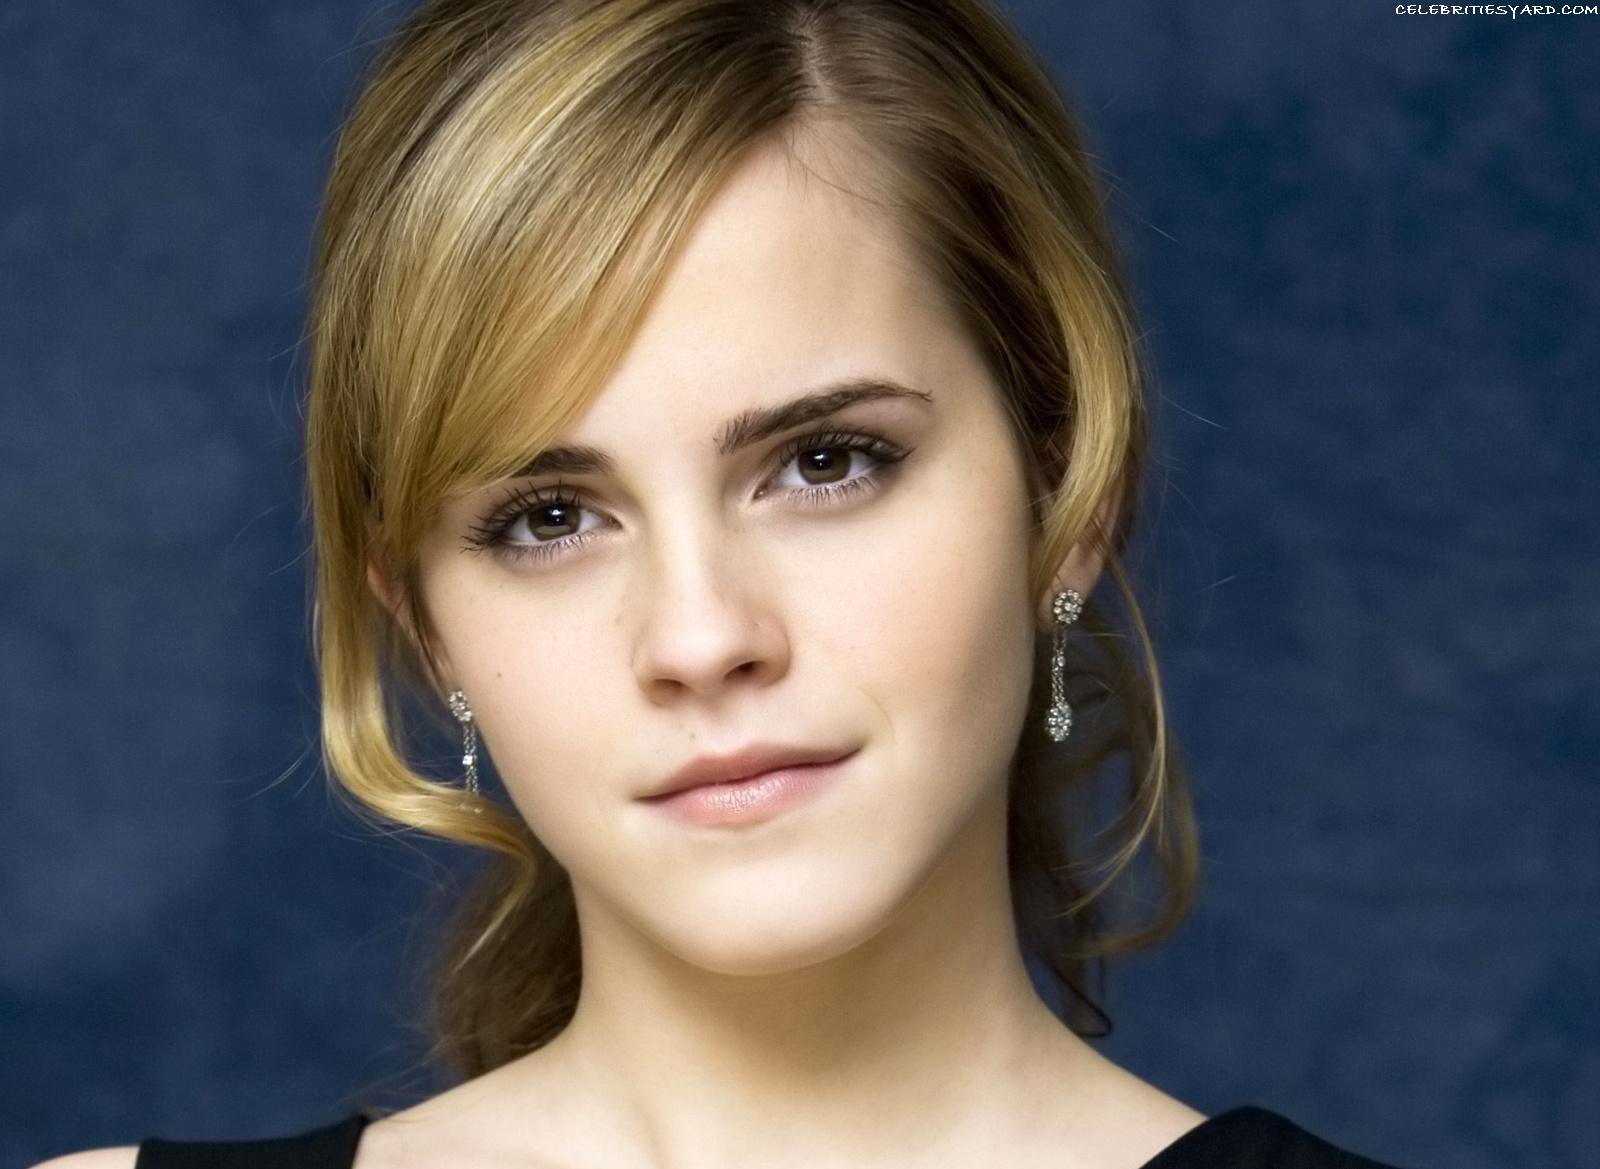 Hair Cut Emma Watson Shoulder Length Hair Cute Emma Watson Wallpaper